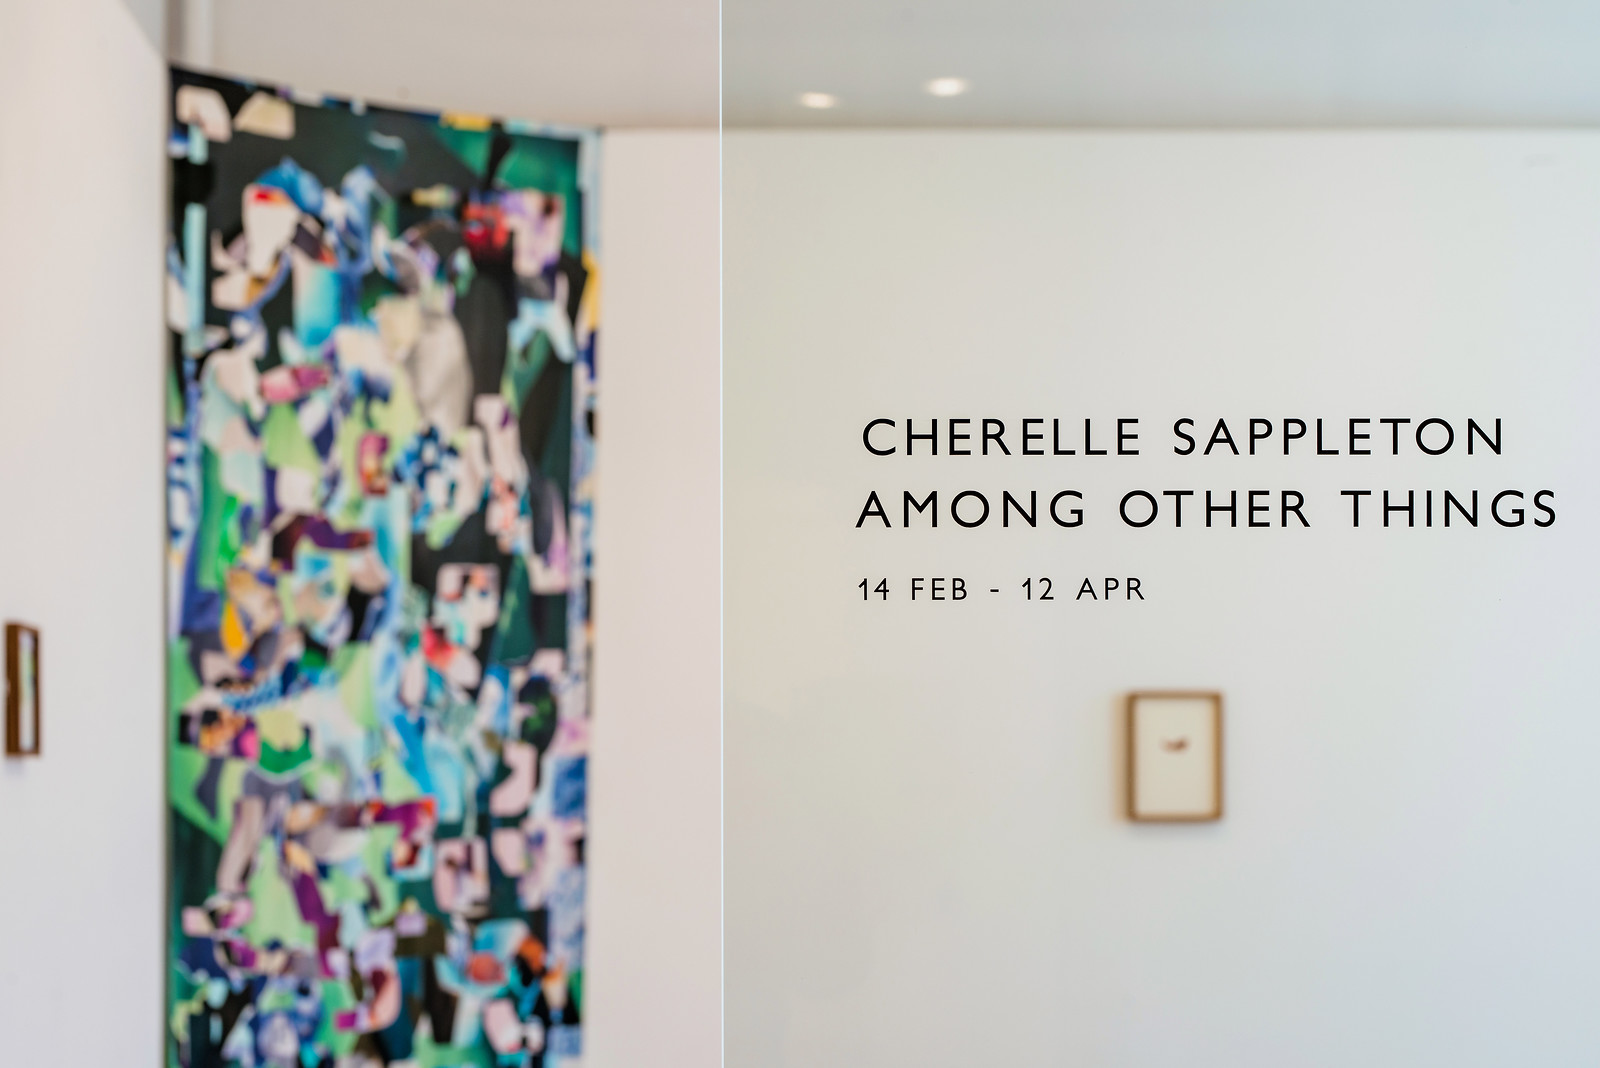 CHERELLE SAPPLETON: AMONG OTHER THINGS 2020